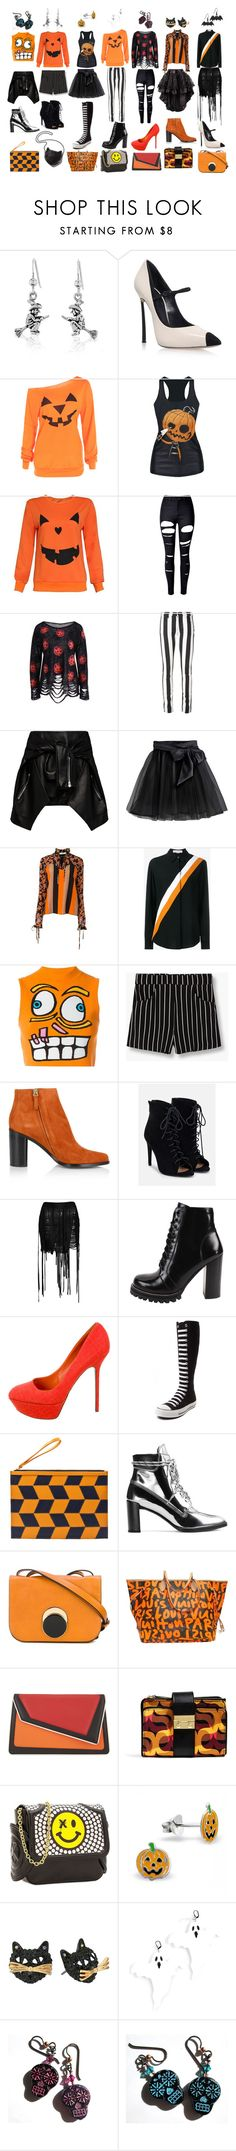 """""""560"""" by violetwednesday ❤ liked on Polyvore featuring Casadei, WithChic, Off-White, Magda Butrym, Little Wardrobe London, MSGM, STELLA McCARTNEY, Jeremy Scott, MANGO and Chloé"""